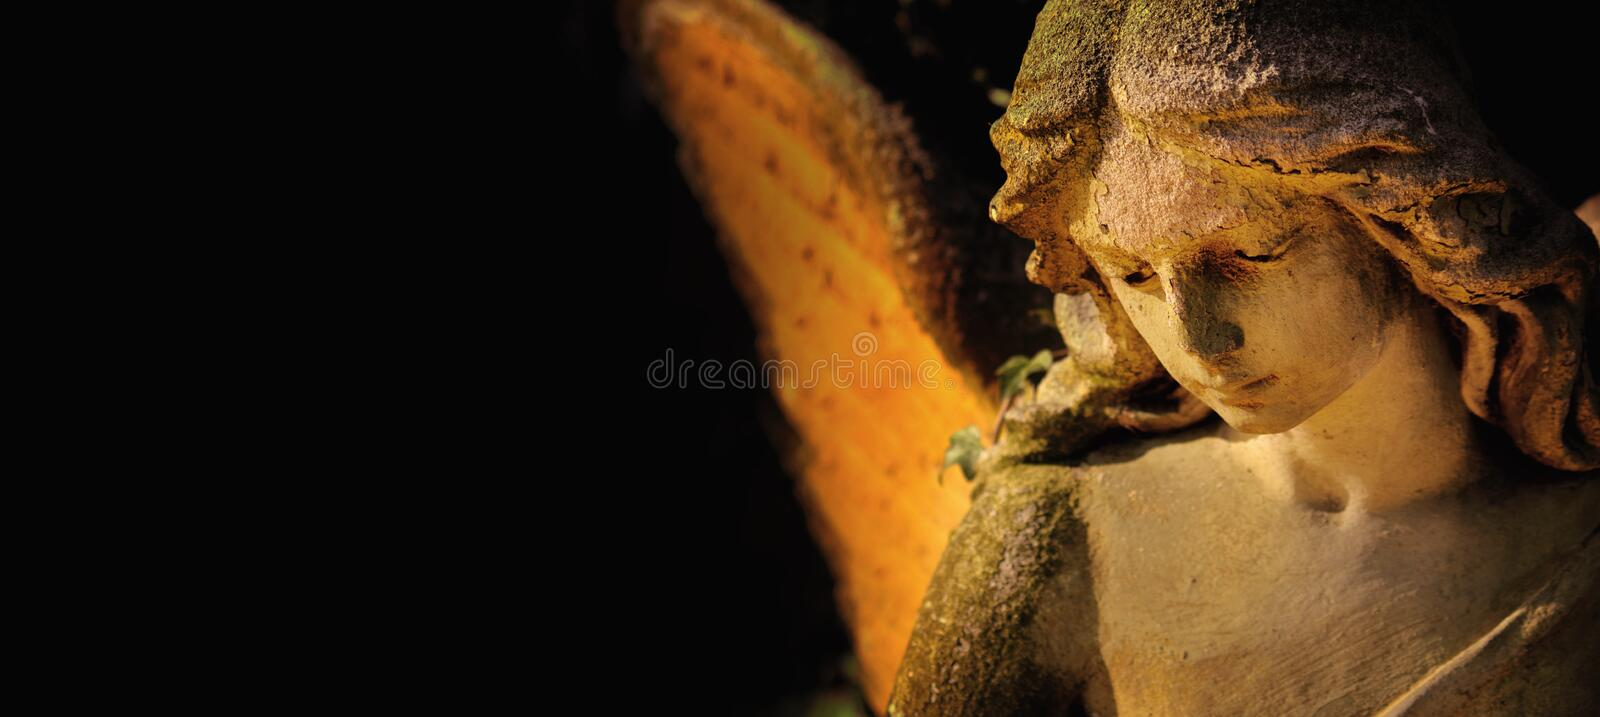 Sculpture of an angel with wings against dark background Religi. Sculpture of gold angel with wings against dark background Religion, faith, Christianity, soul royalty free stock photo